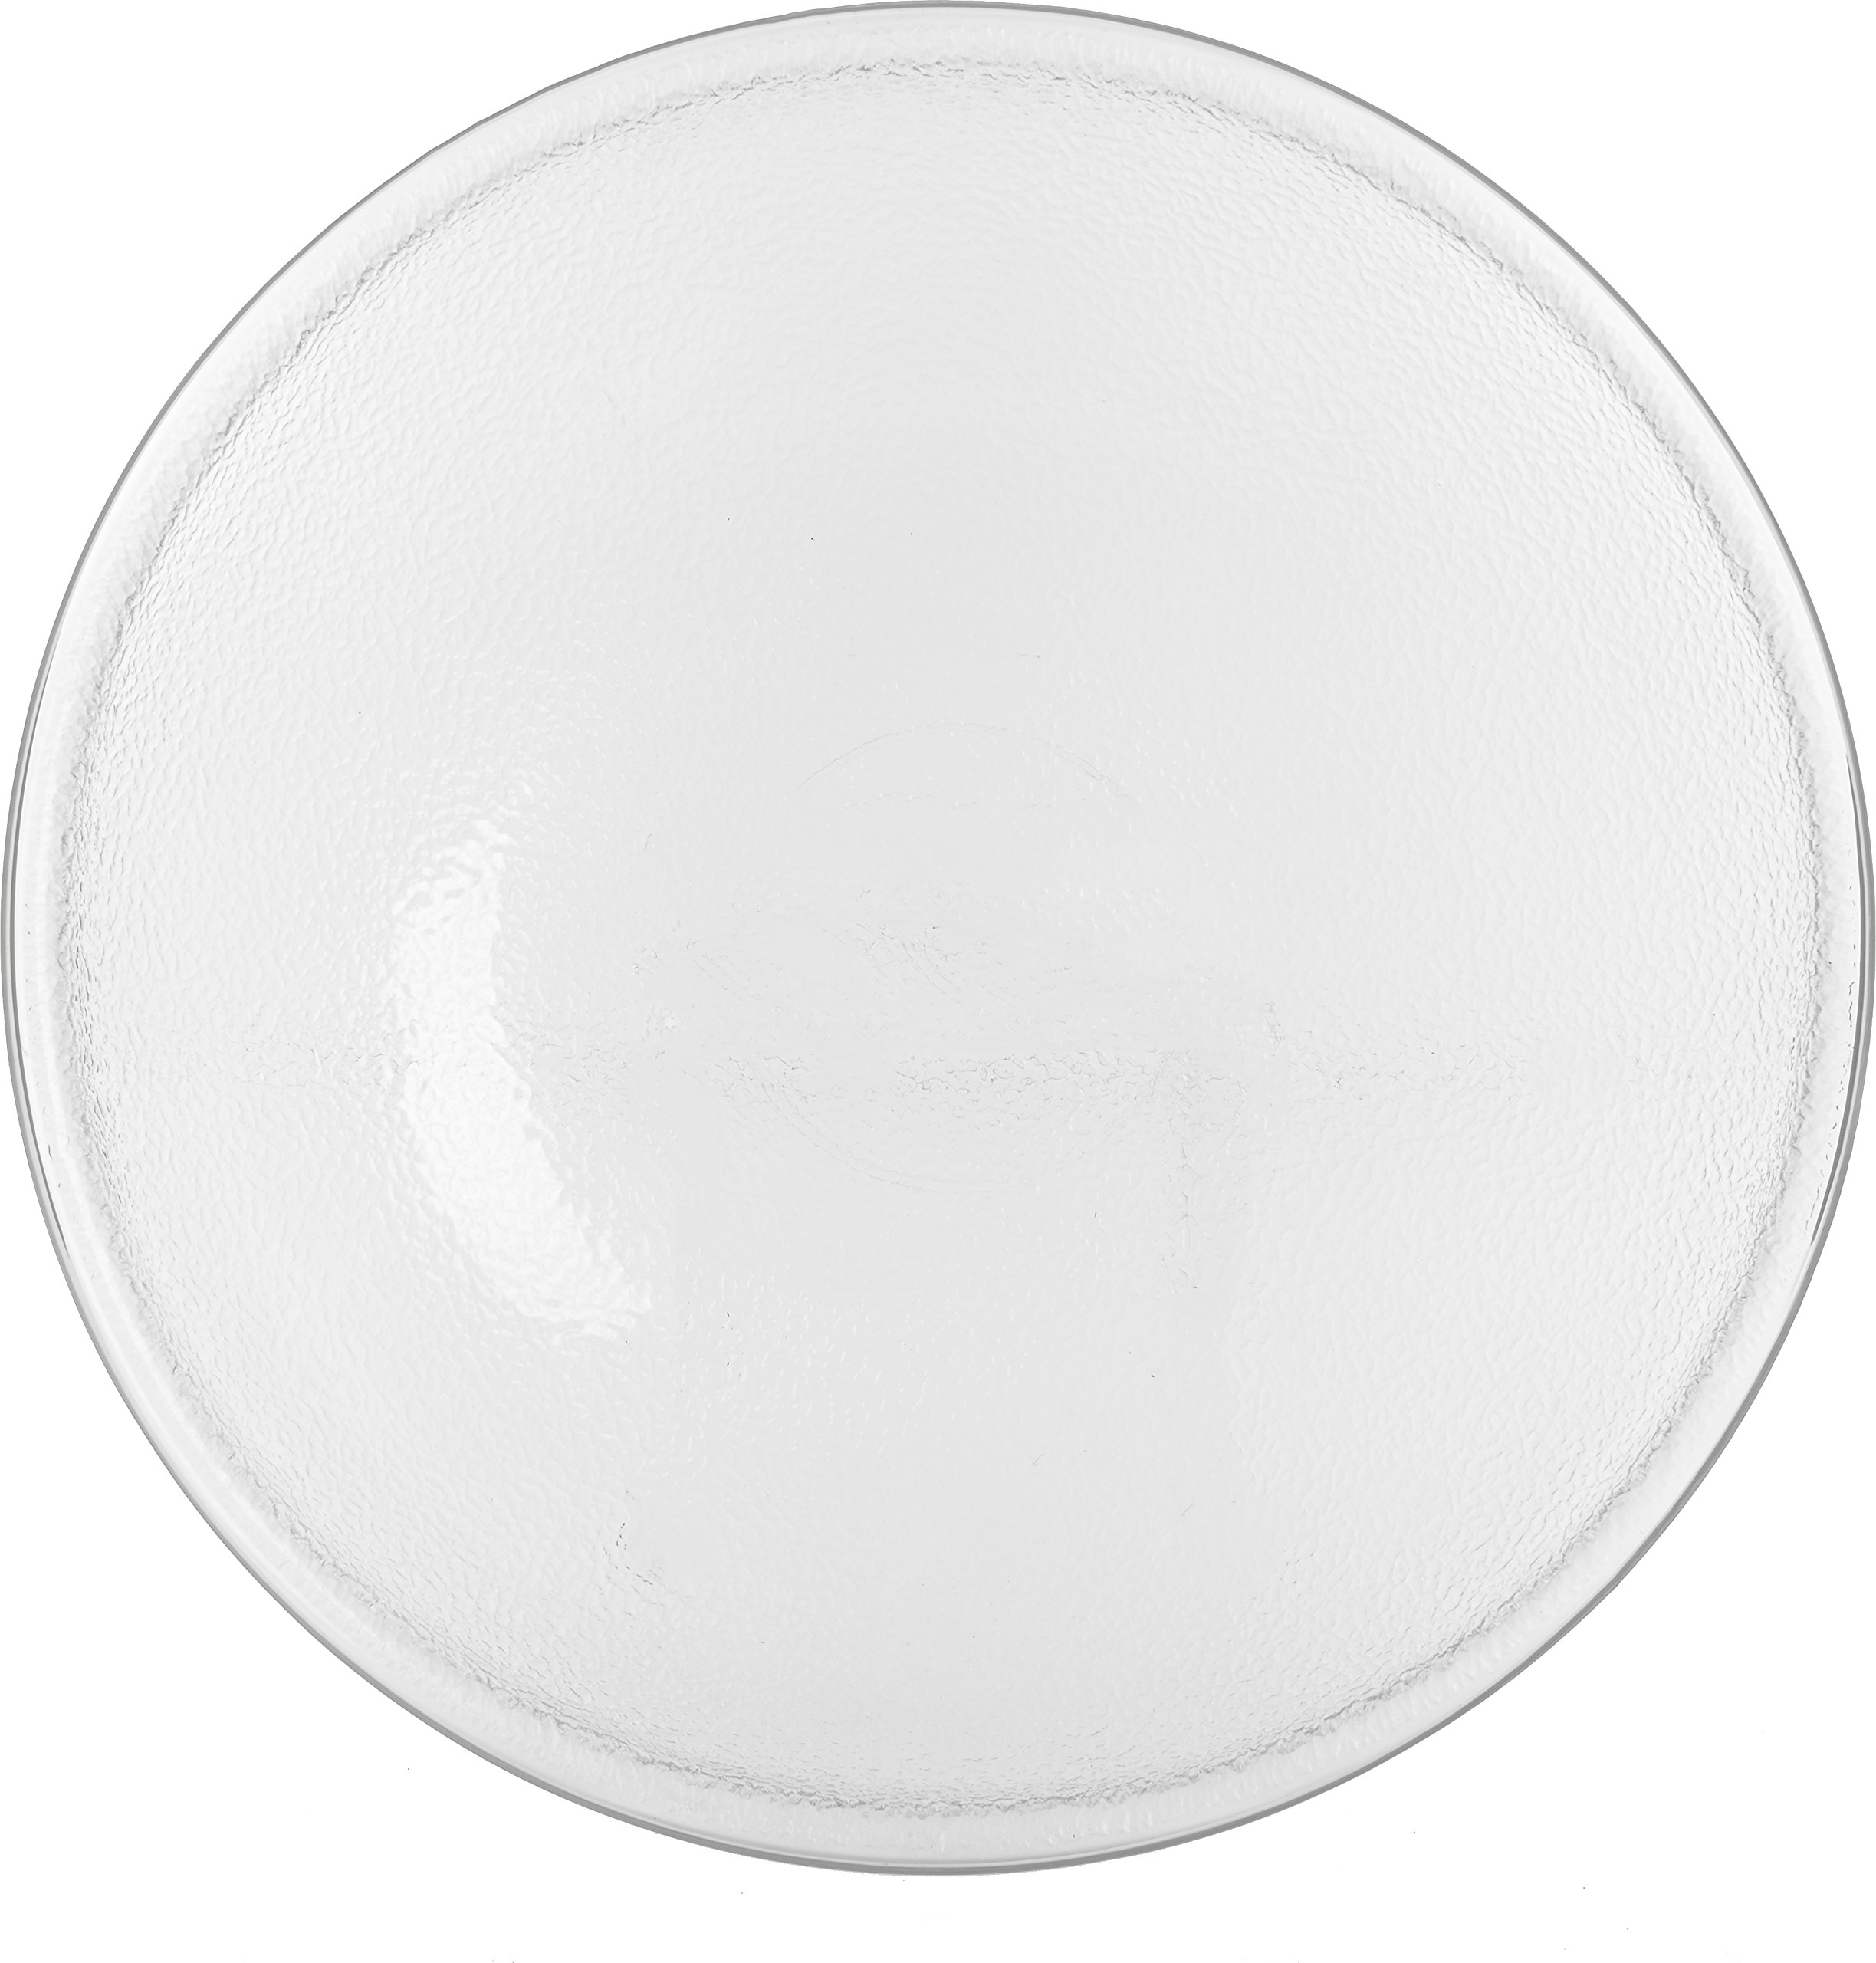 Carlisle SP2207 Acrylic Pebbled Punch Bowl, 24-qt. Capacity, 22'' Diameter x 11.12'' Height, Clear by Carlisle (Image #3)